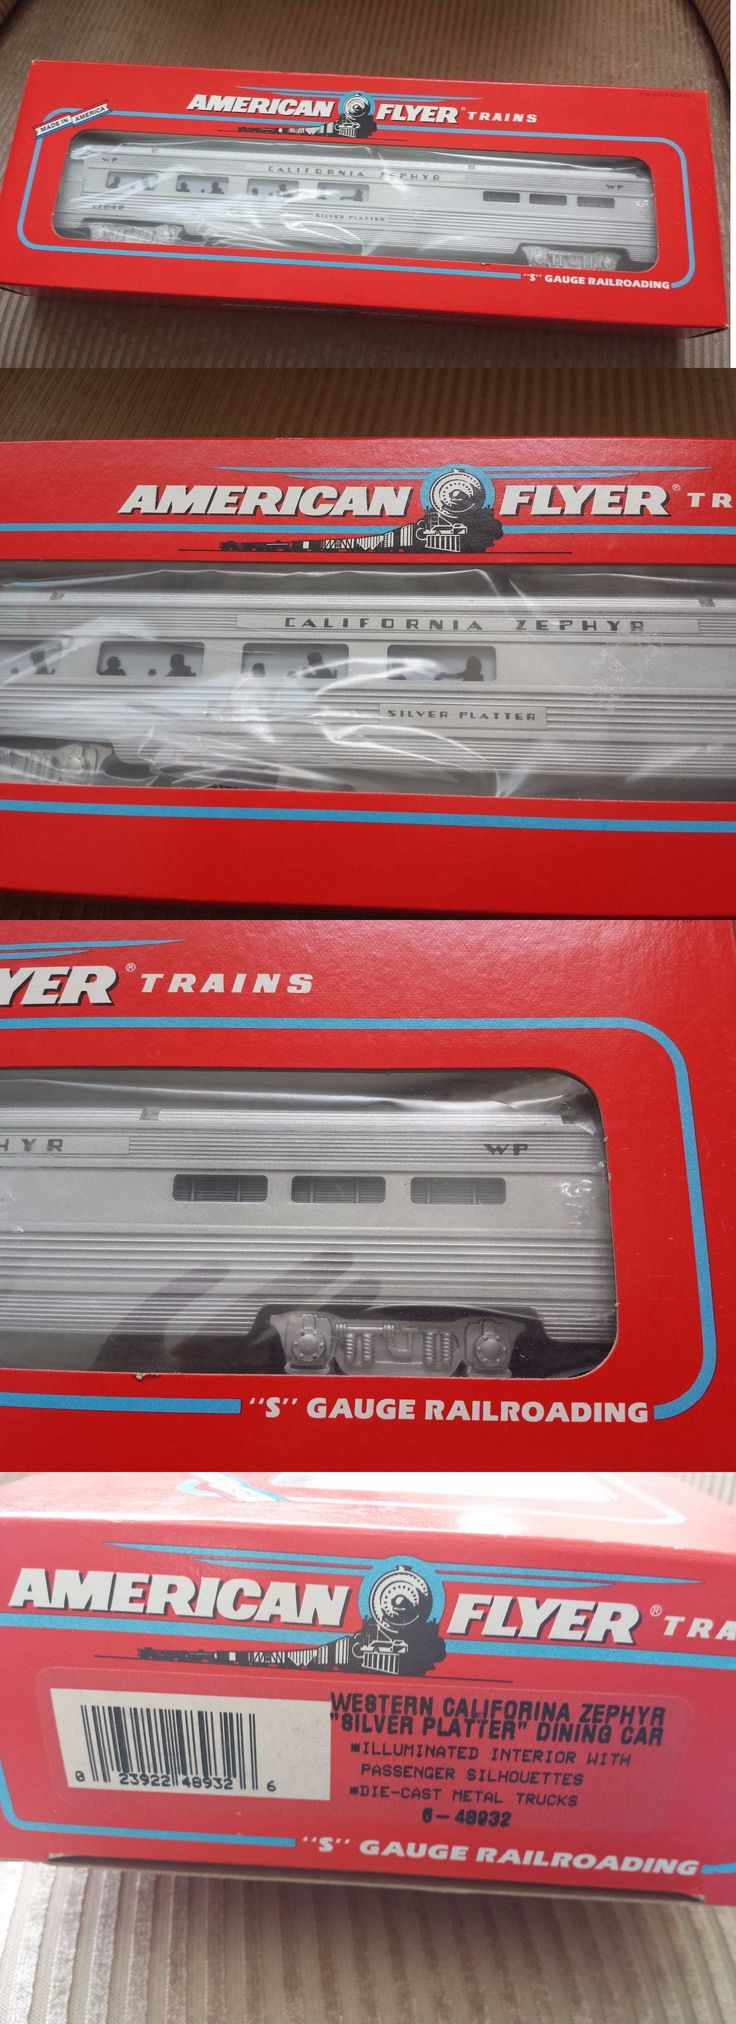 Passenger Cars 180282: American Flyer S 48932 Silver Platter Dining Car California Zephyr New In Box -> BUY IT NOW ONLY: $49.99 on eBay!